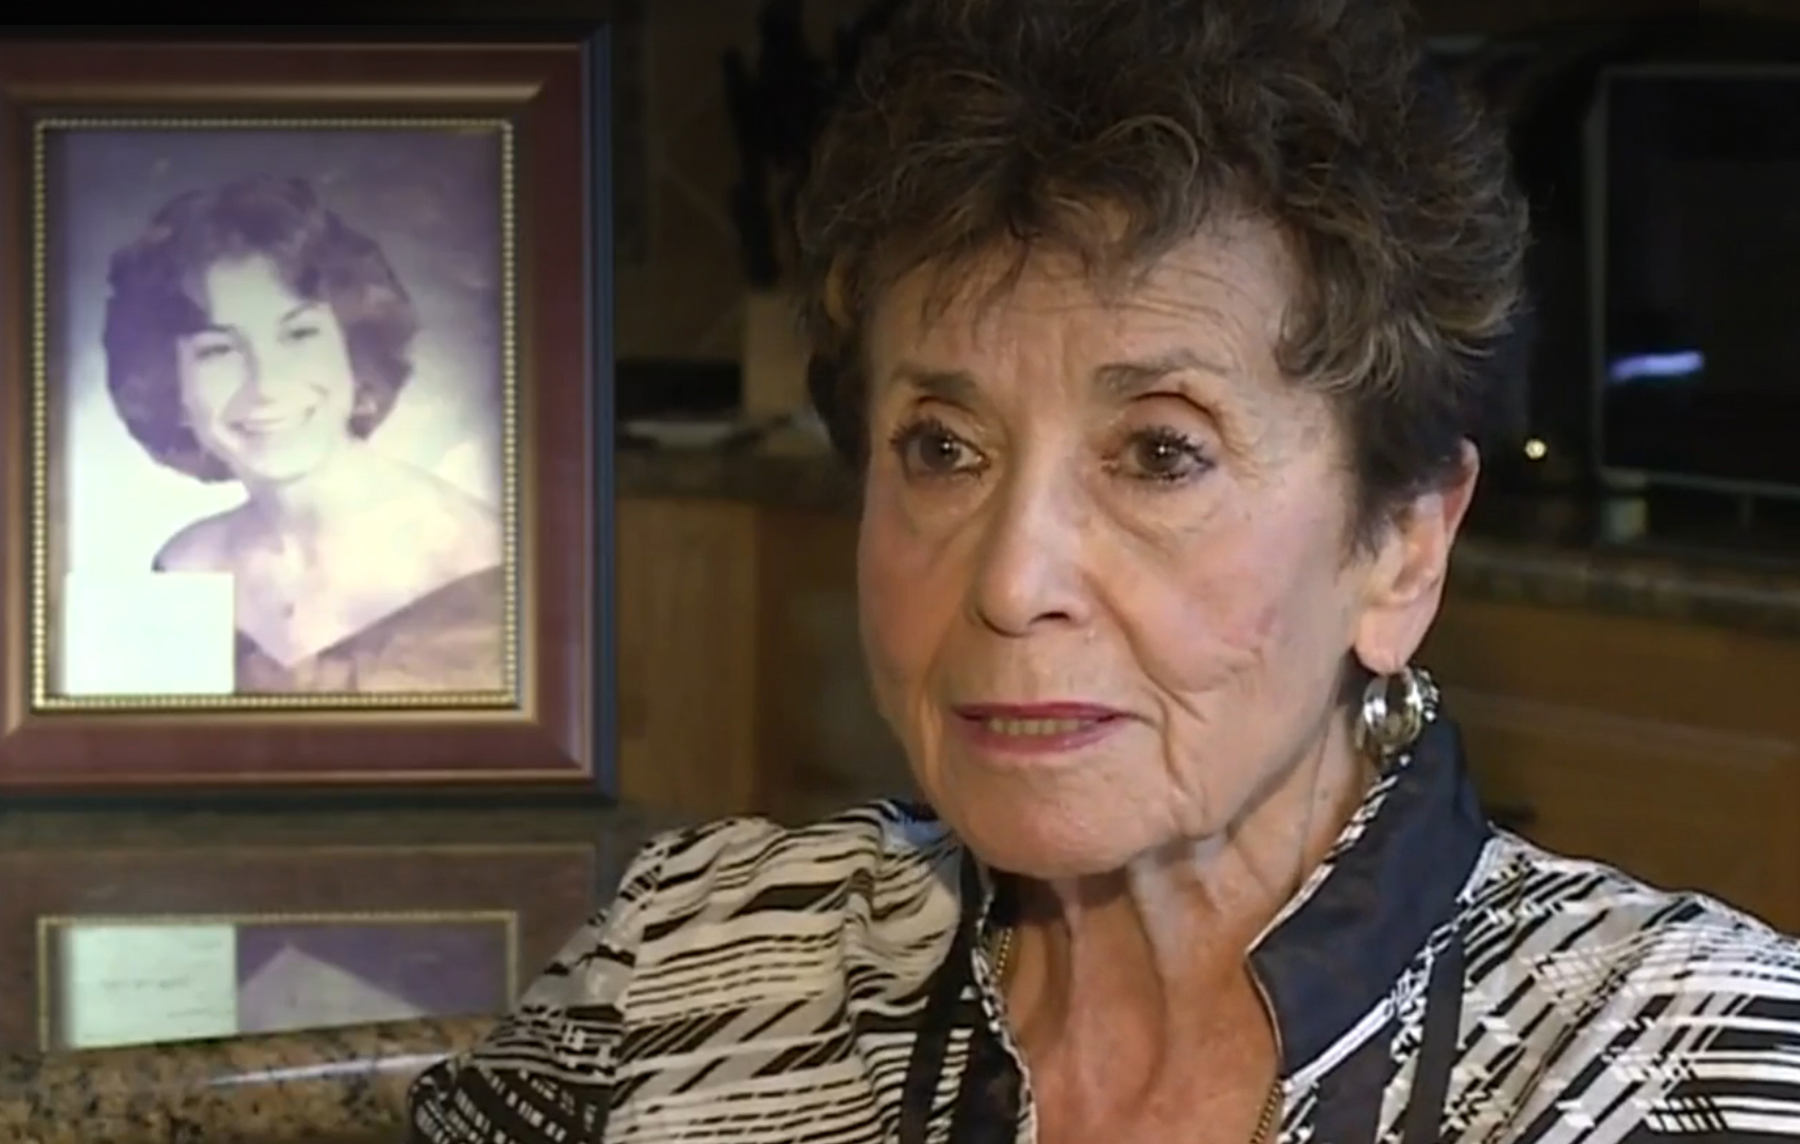 40 years after daughter's murder, Auburn woman still fighting for victims' rights